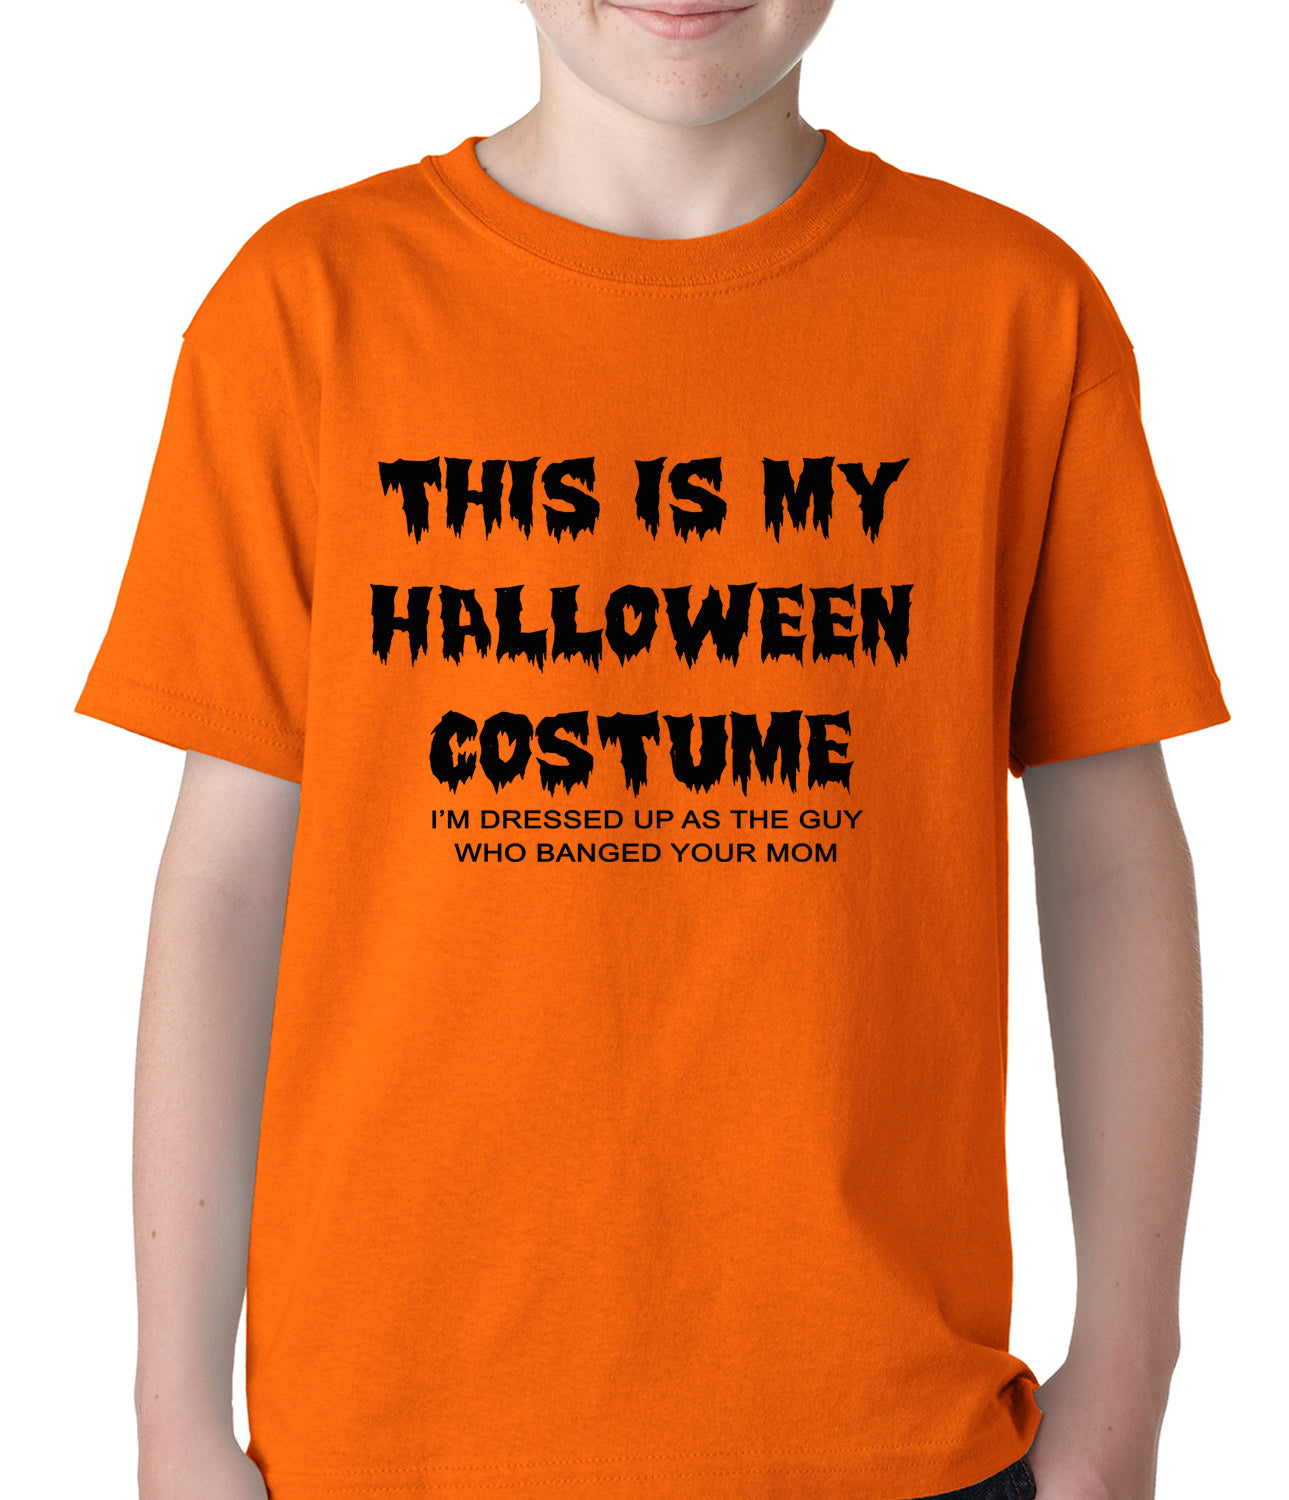 eb6fa7f7 This is My Halloween Costume The Guy Who Banged Your Mom Kids T-shirt